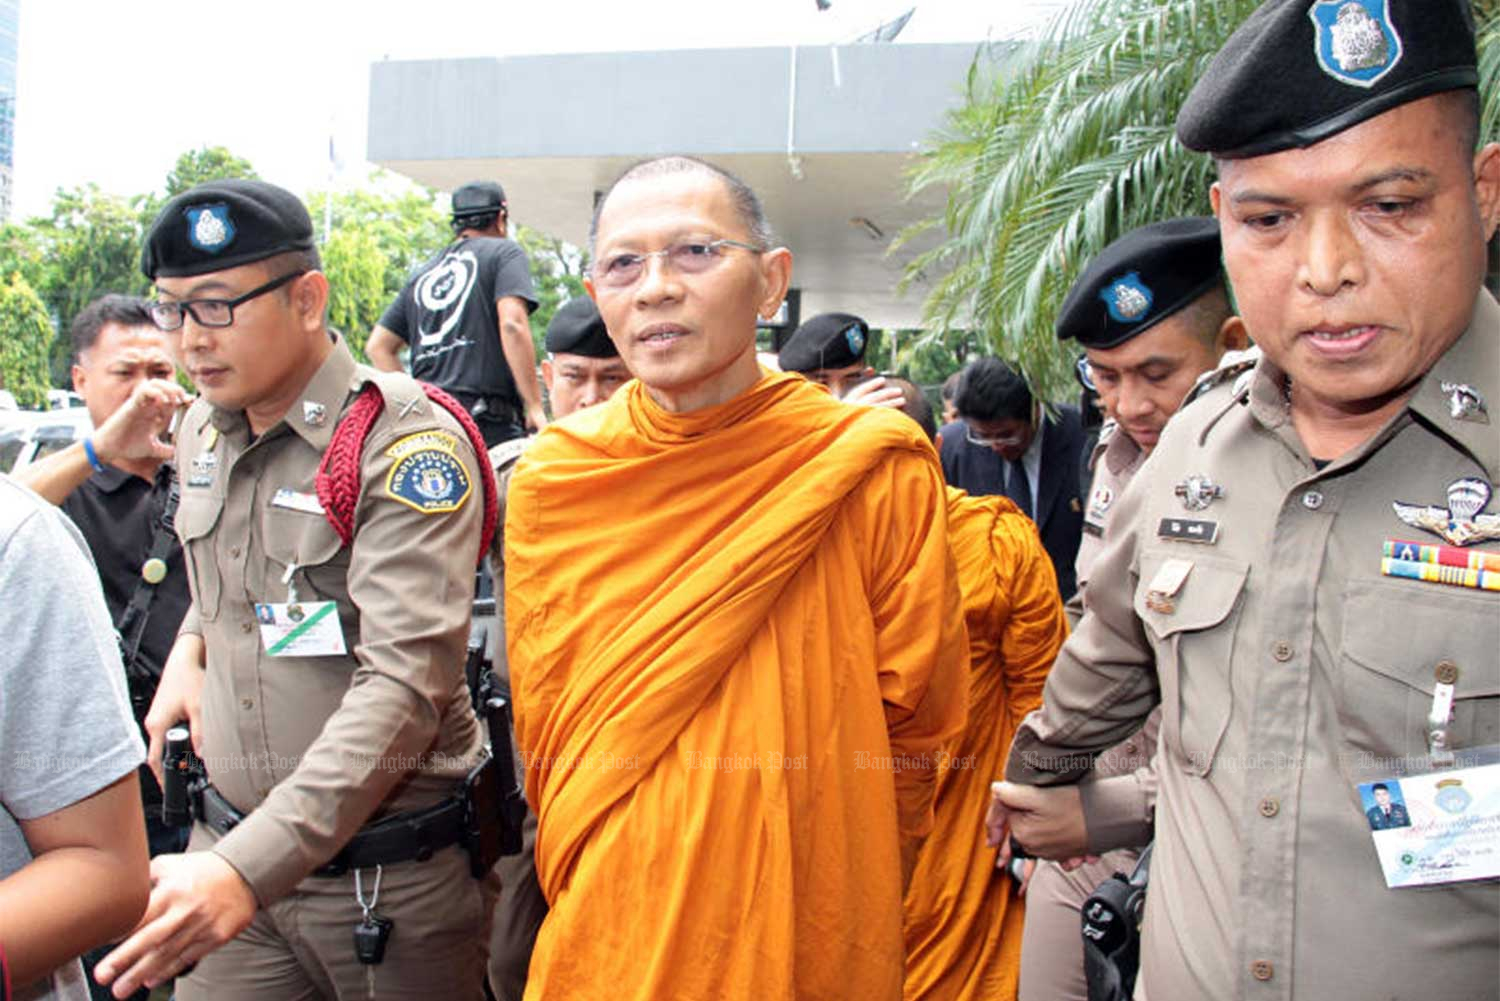 Former Phra Phrom Dilok, then the abbot of Wat Sam Phraya, is arrested at the temple in Phra Nakhon district, Bangkok, on May 24, 2018. (File photo)